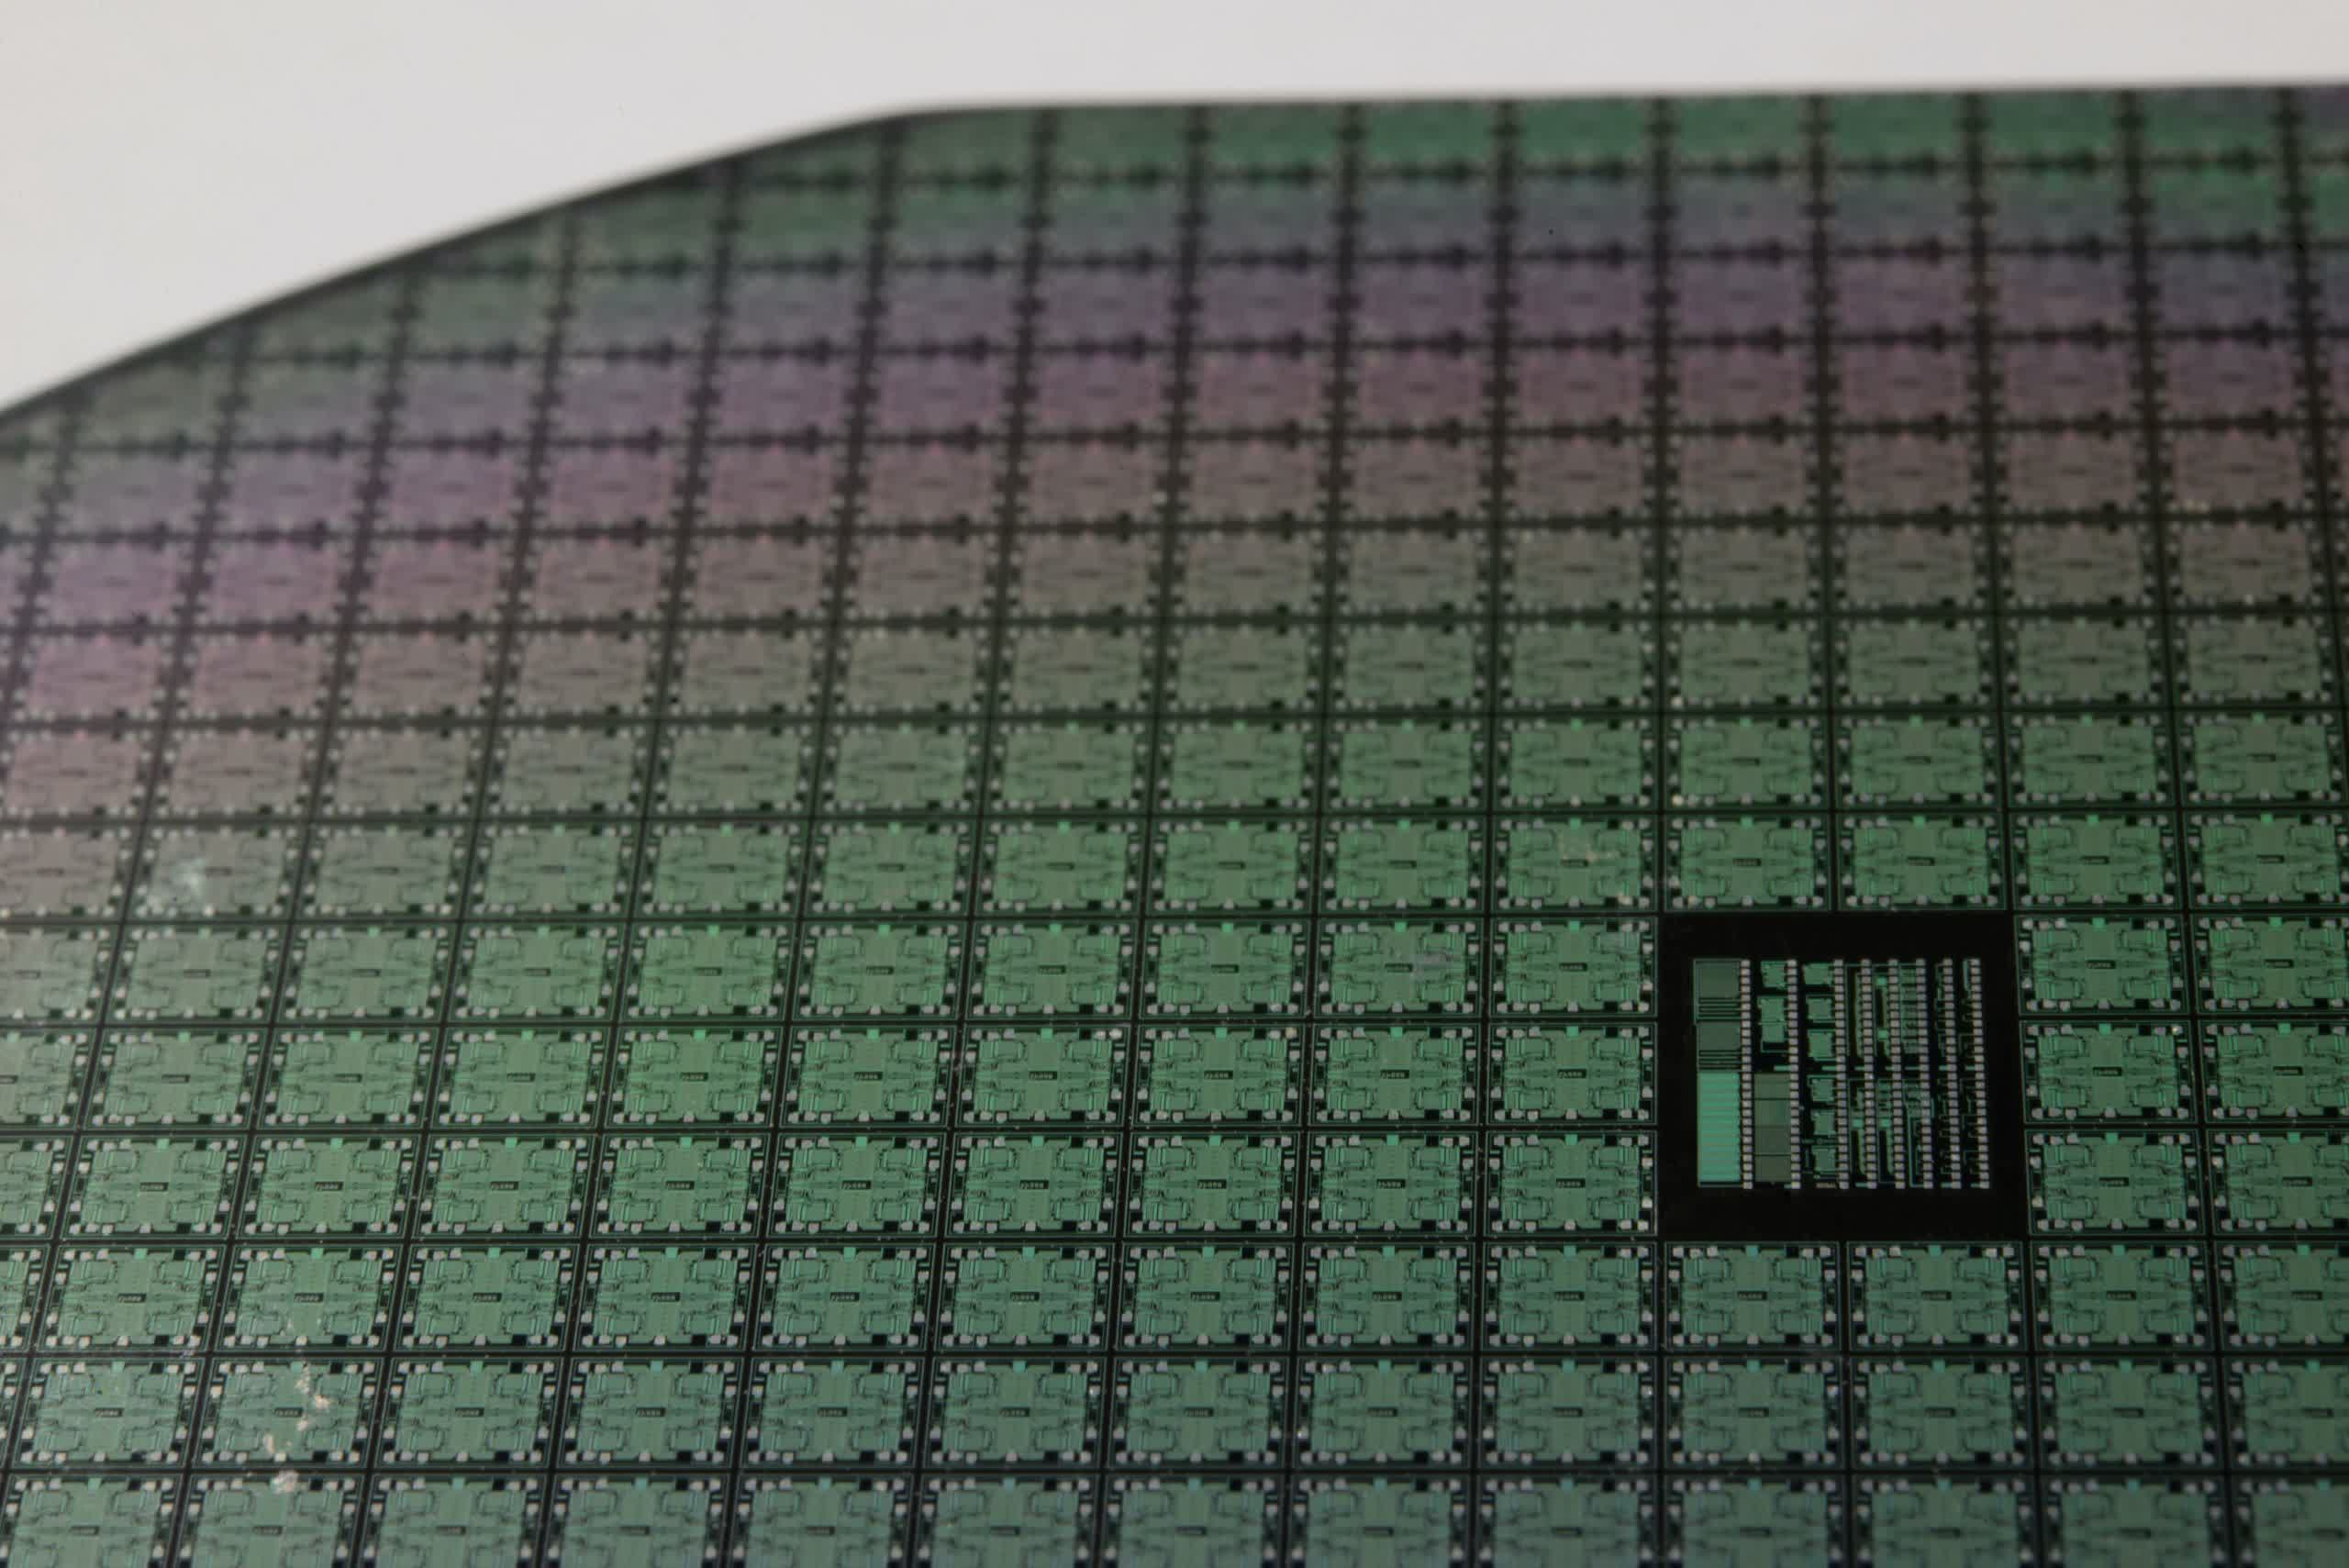 Analysts believe that a single TSMC 5nm wafer costs $17,000